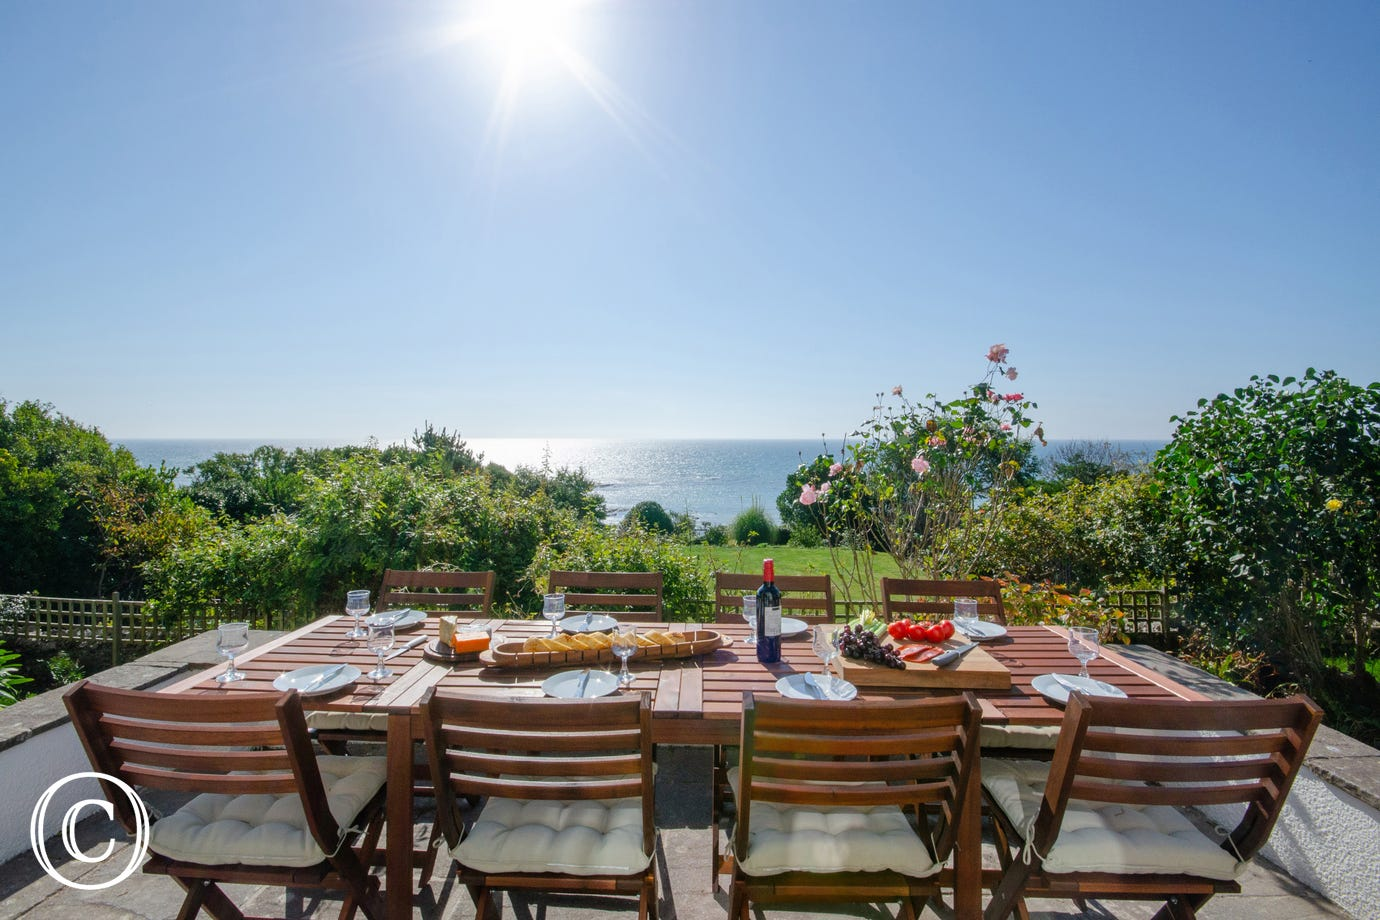 Sunny terrace with sea views perfect for al fresco dining